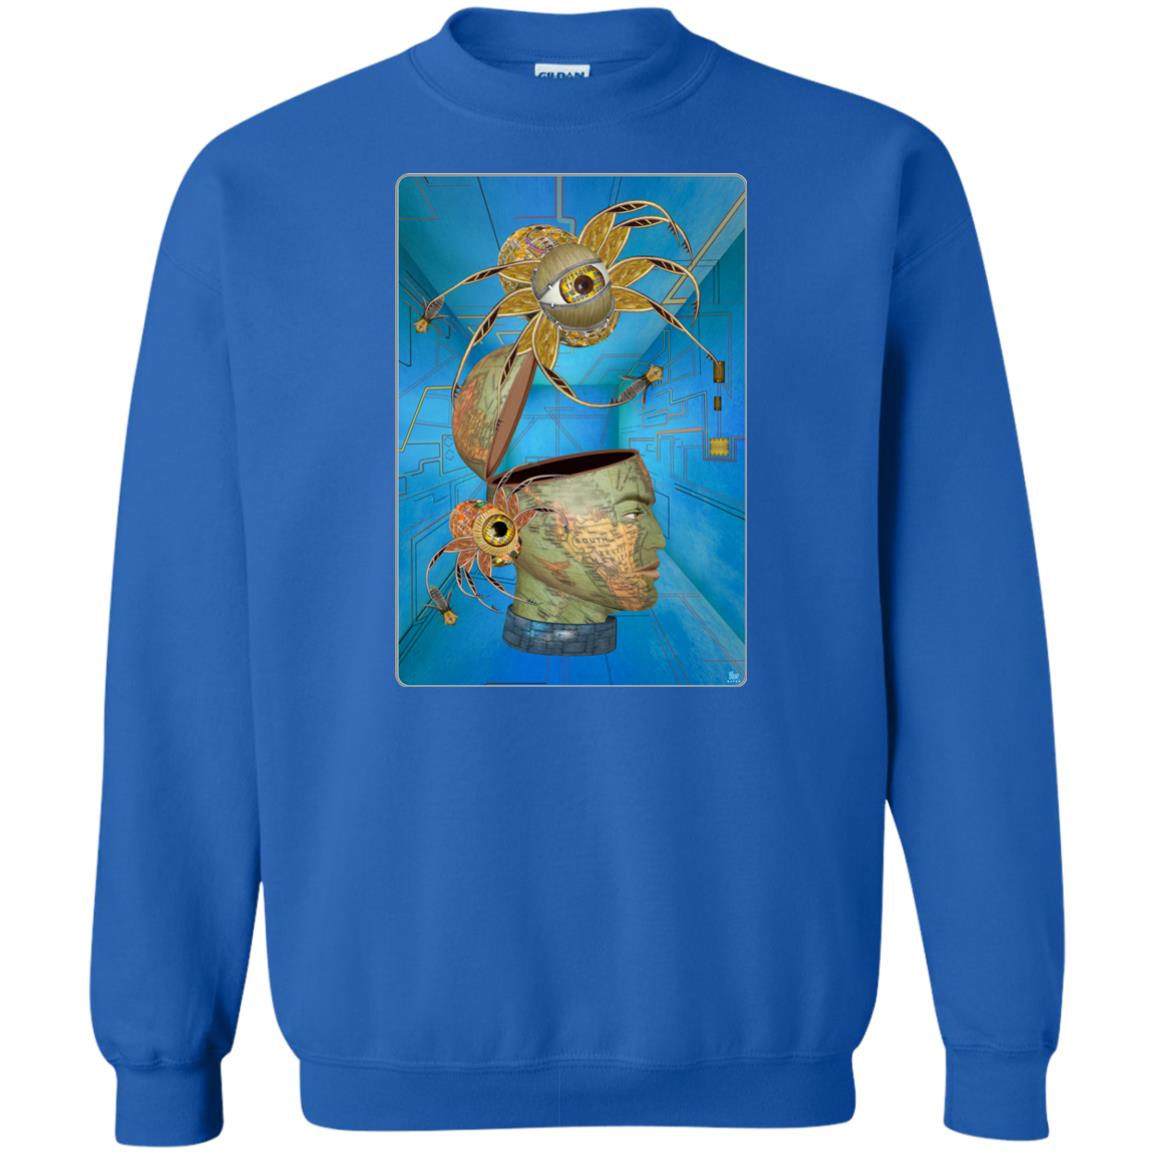 SPYDERBOT CONTROLS THE WORLD - Men's Crew Neck Sweatshirt